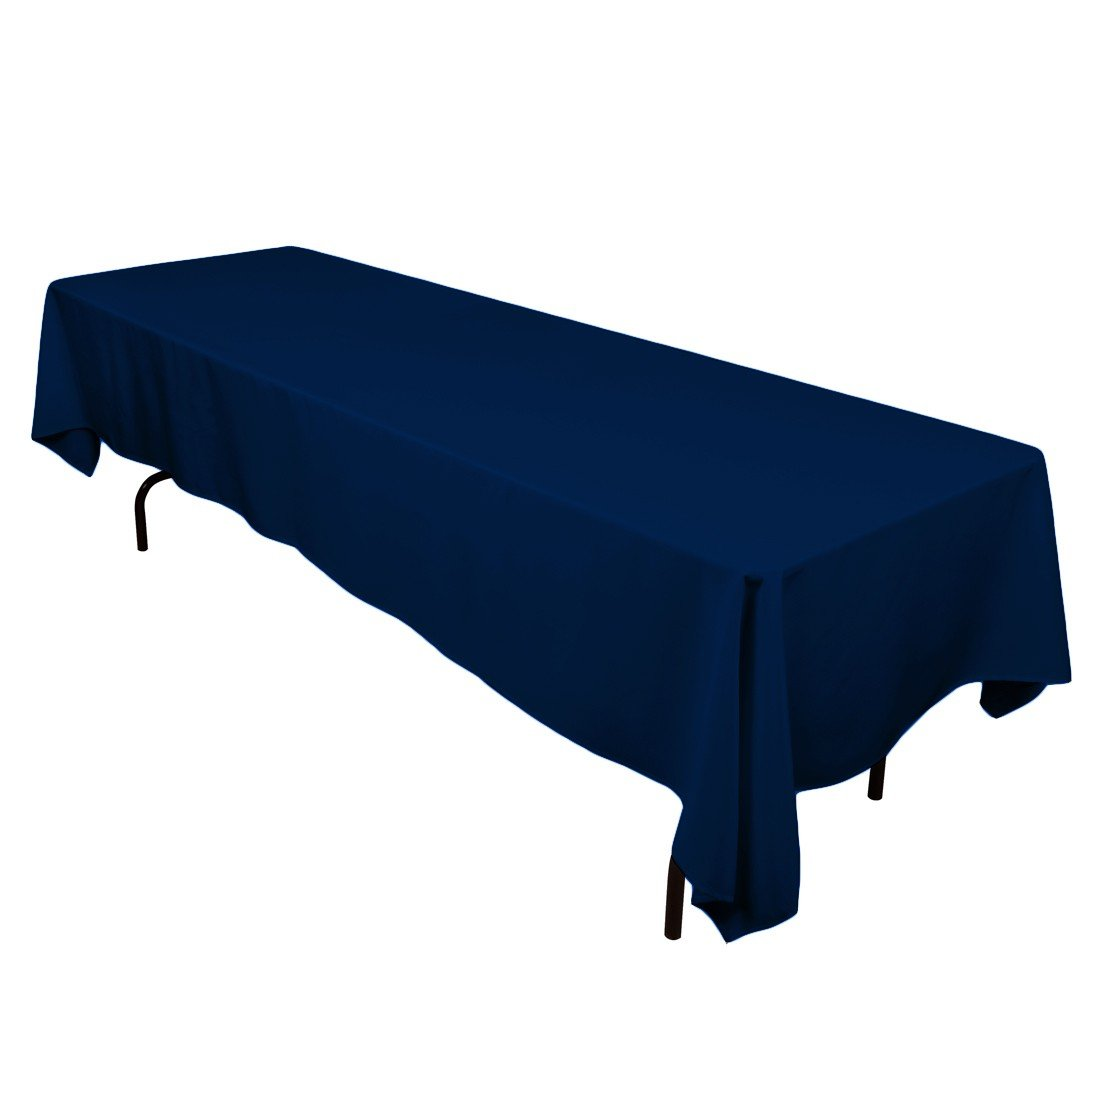 Craft and Party - 10 pcs Rectangular Tablecloth for Home, Party, Wedding or Restaurant Use (60'' X 126'', Navy Blue)